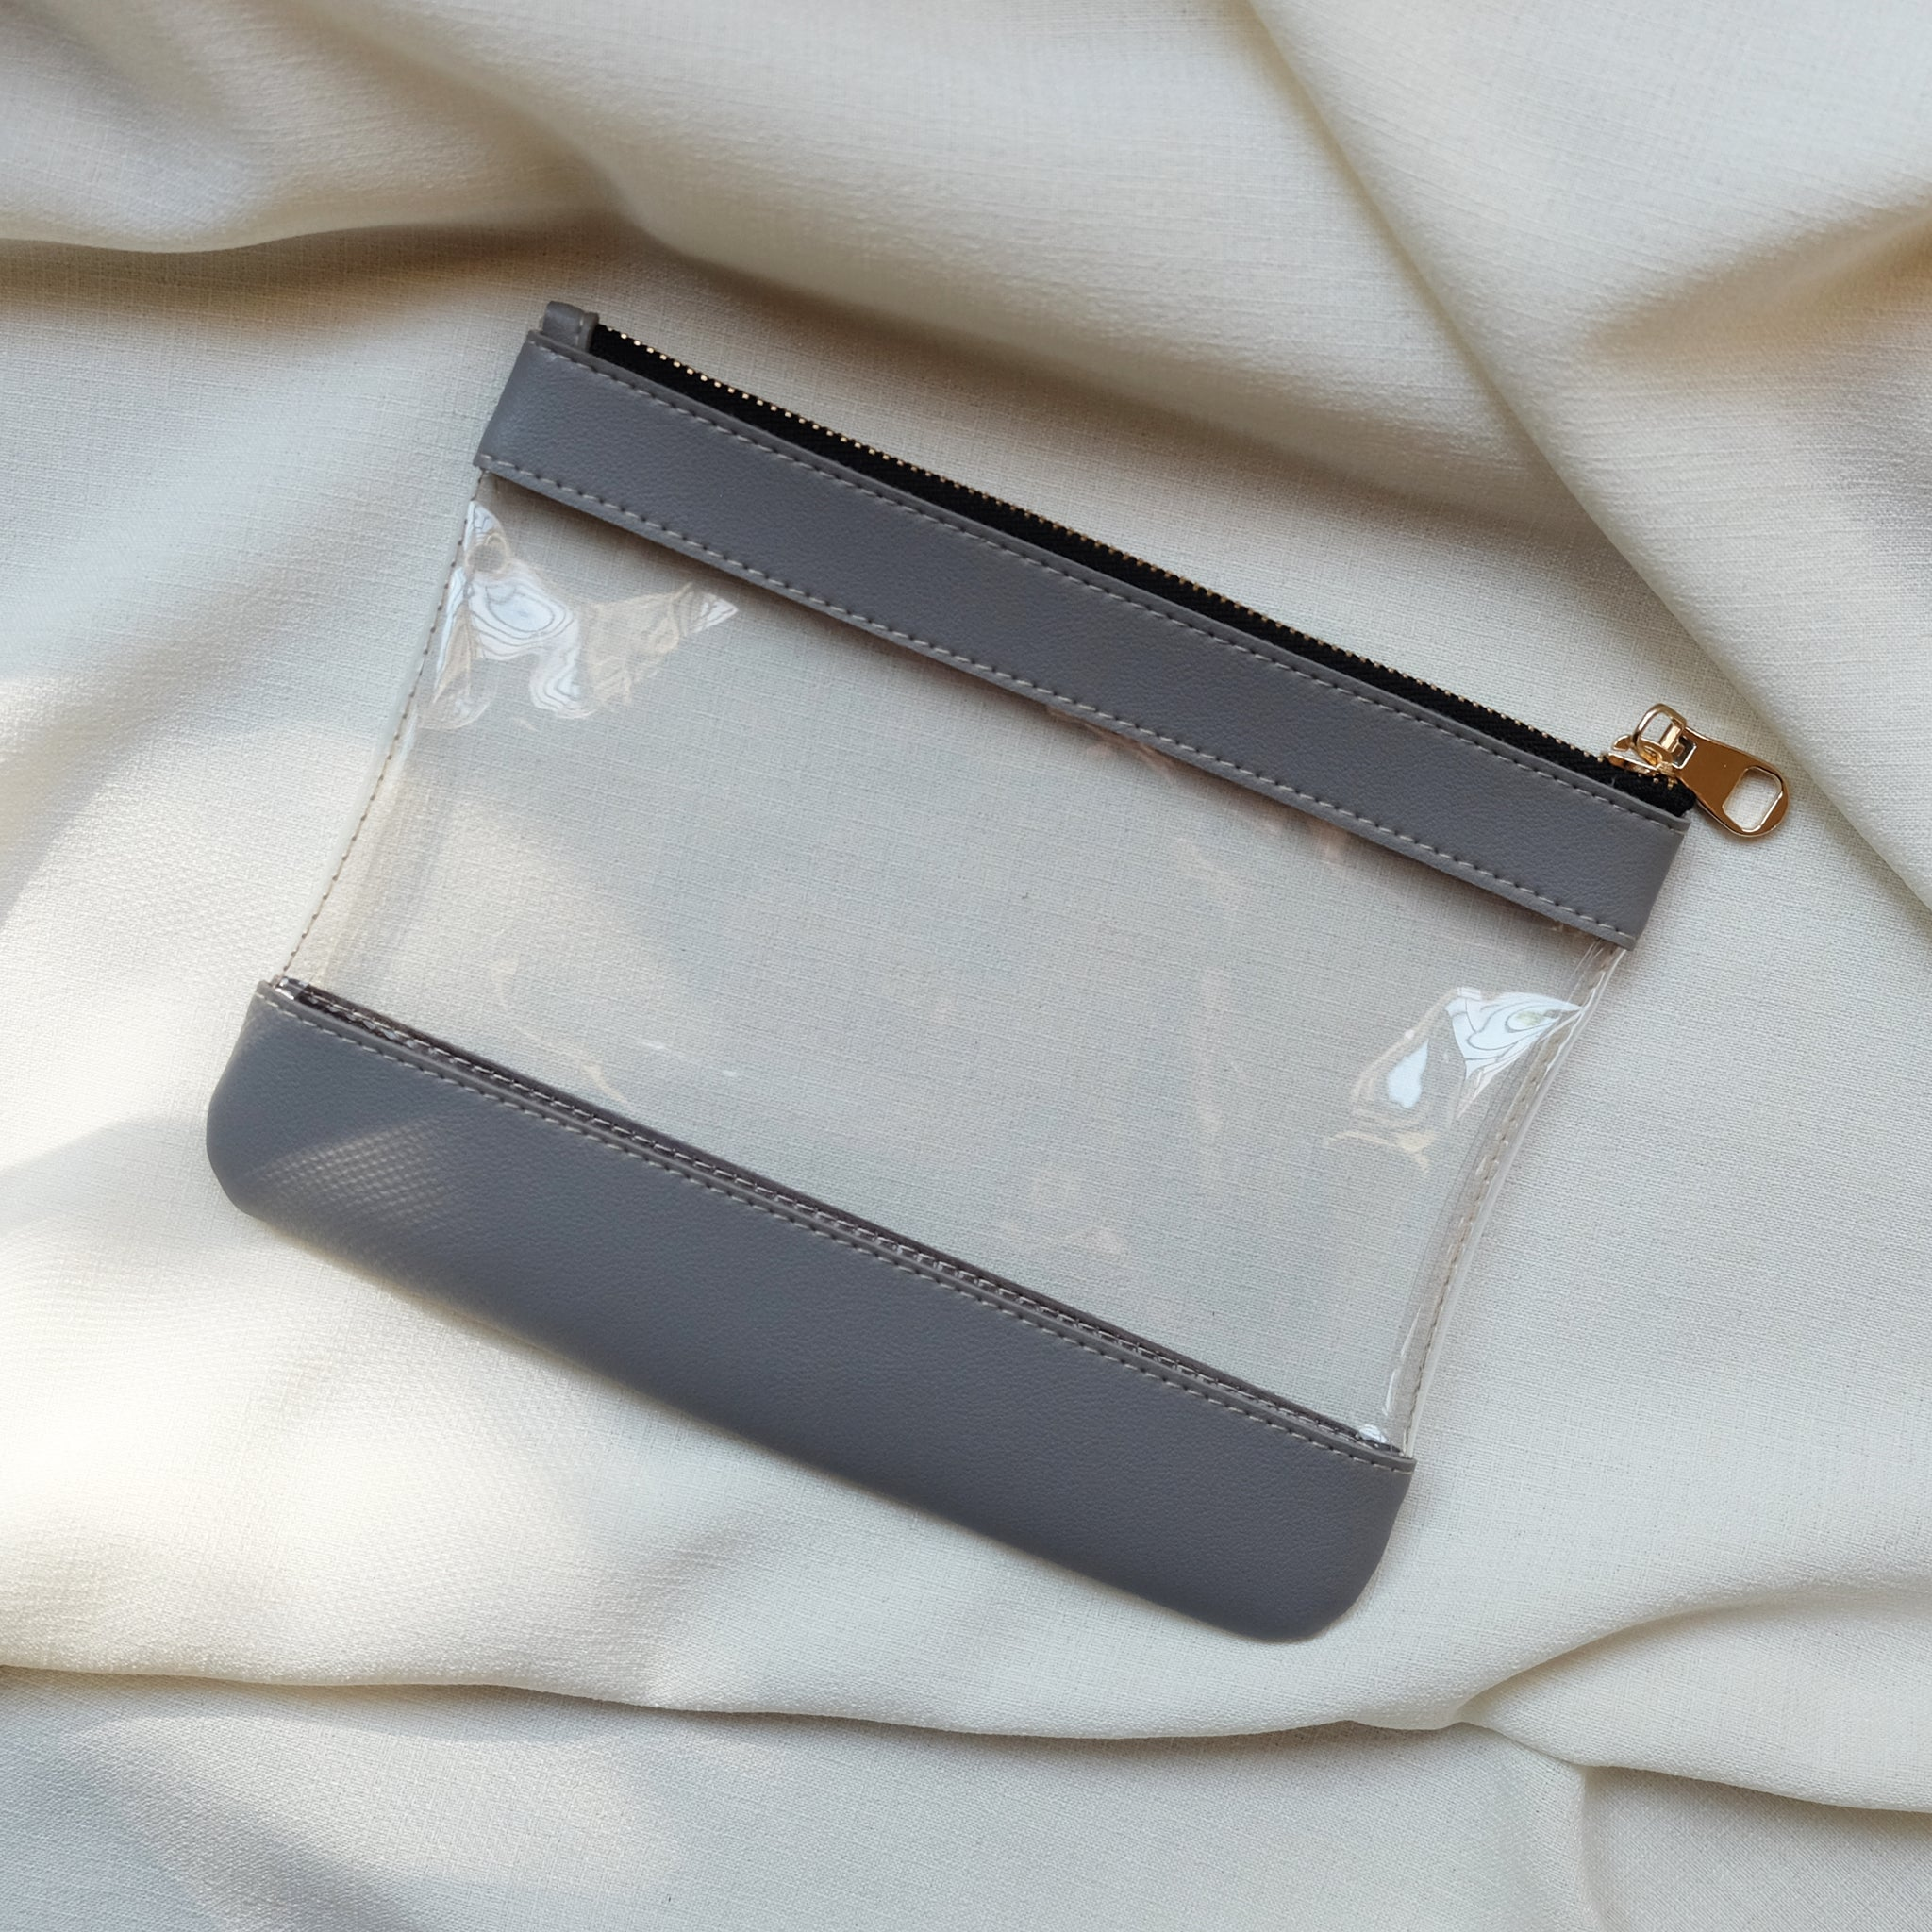 Clarity Pouch in Gray